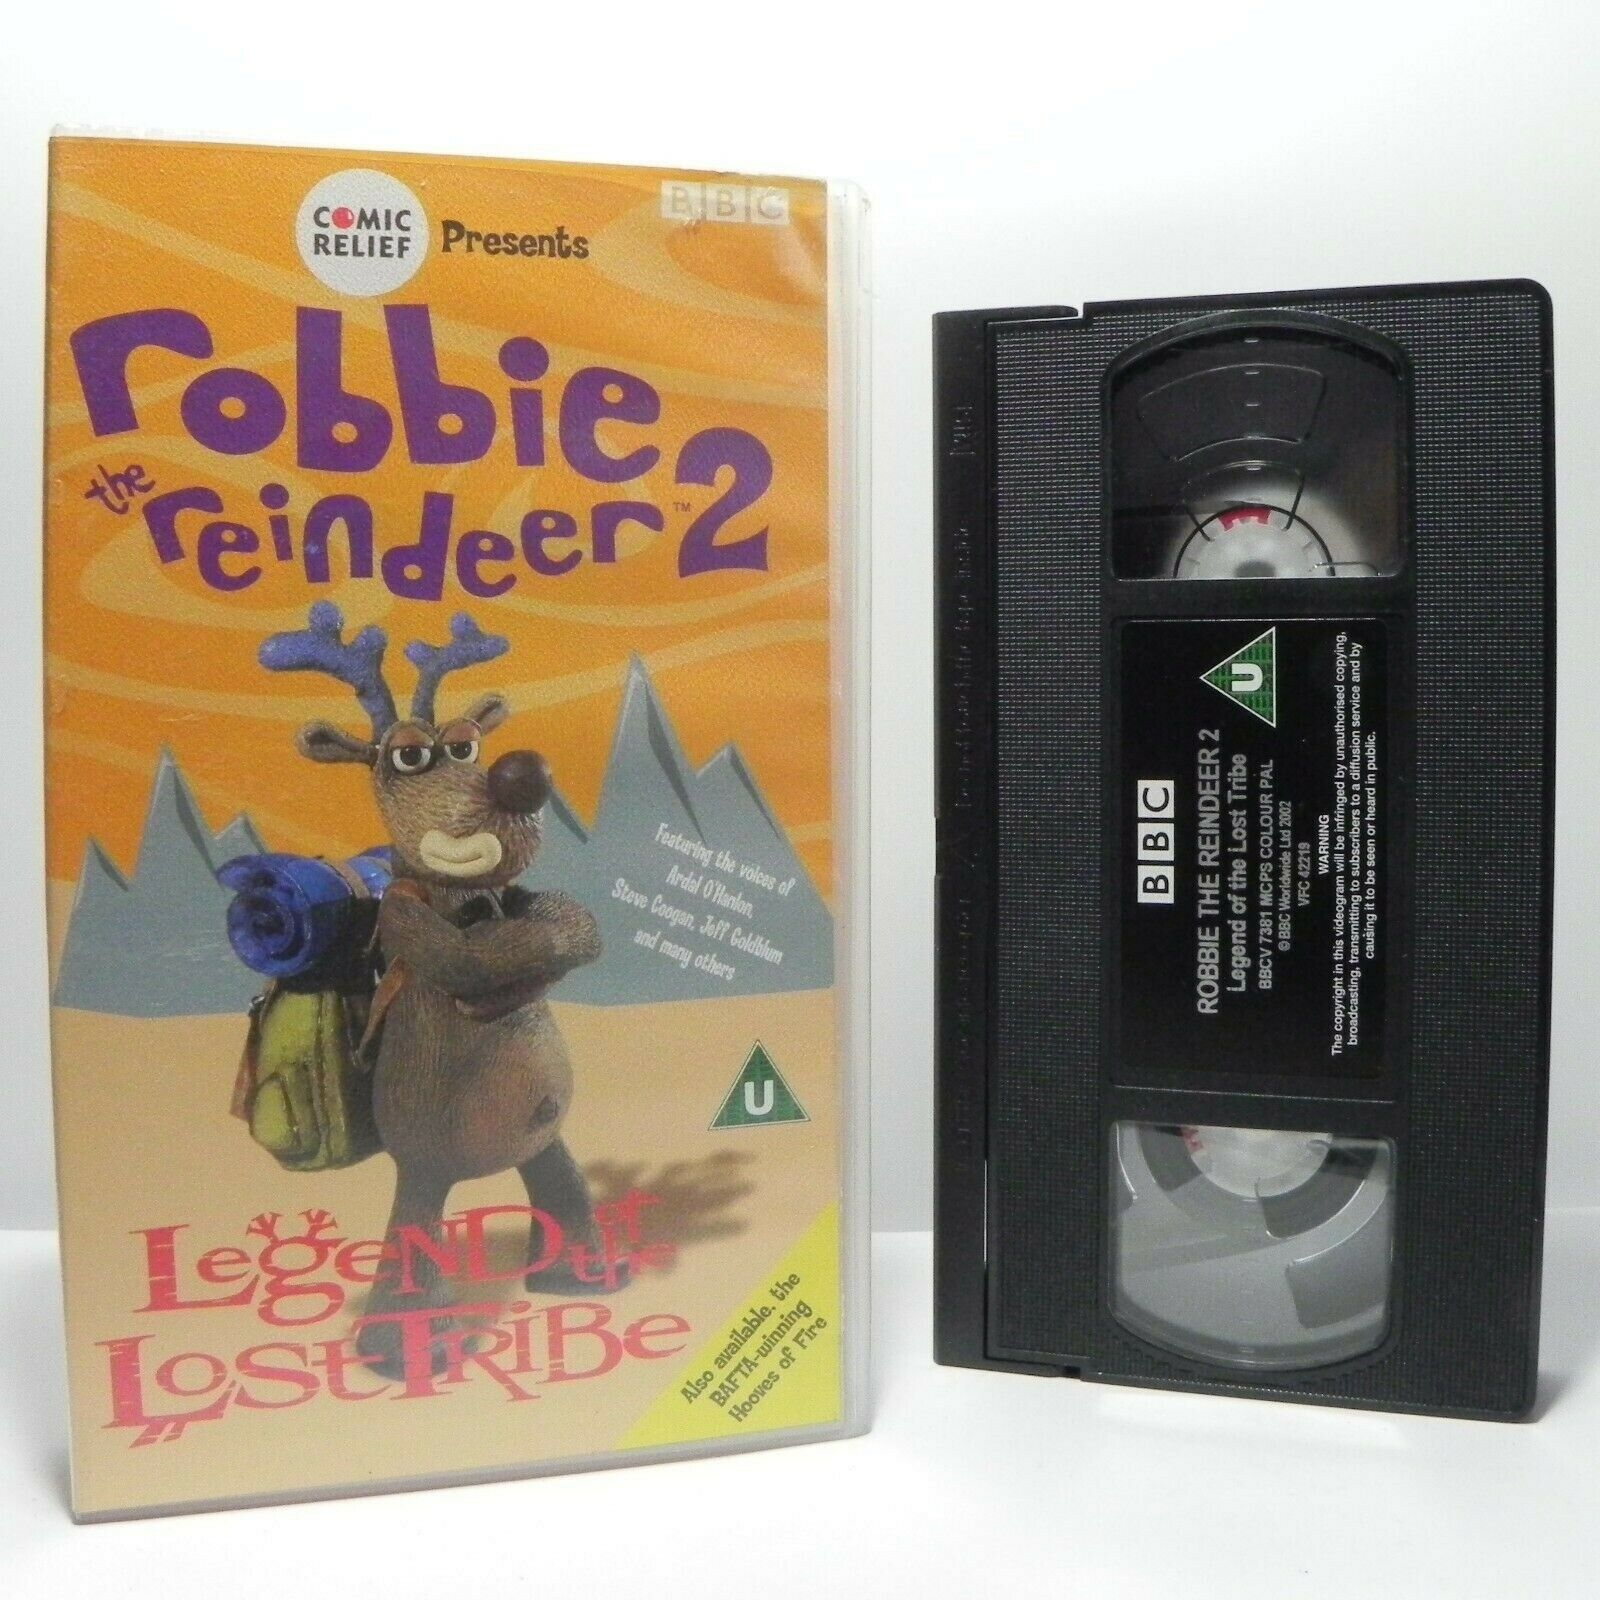 Robbie The Reindeer 2: Legend Of The Lost Tribe - Animated - Children's - VHS